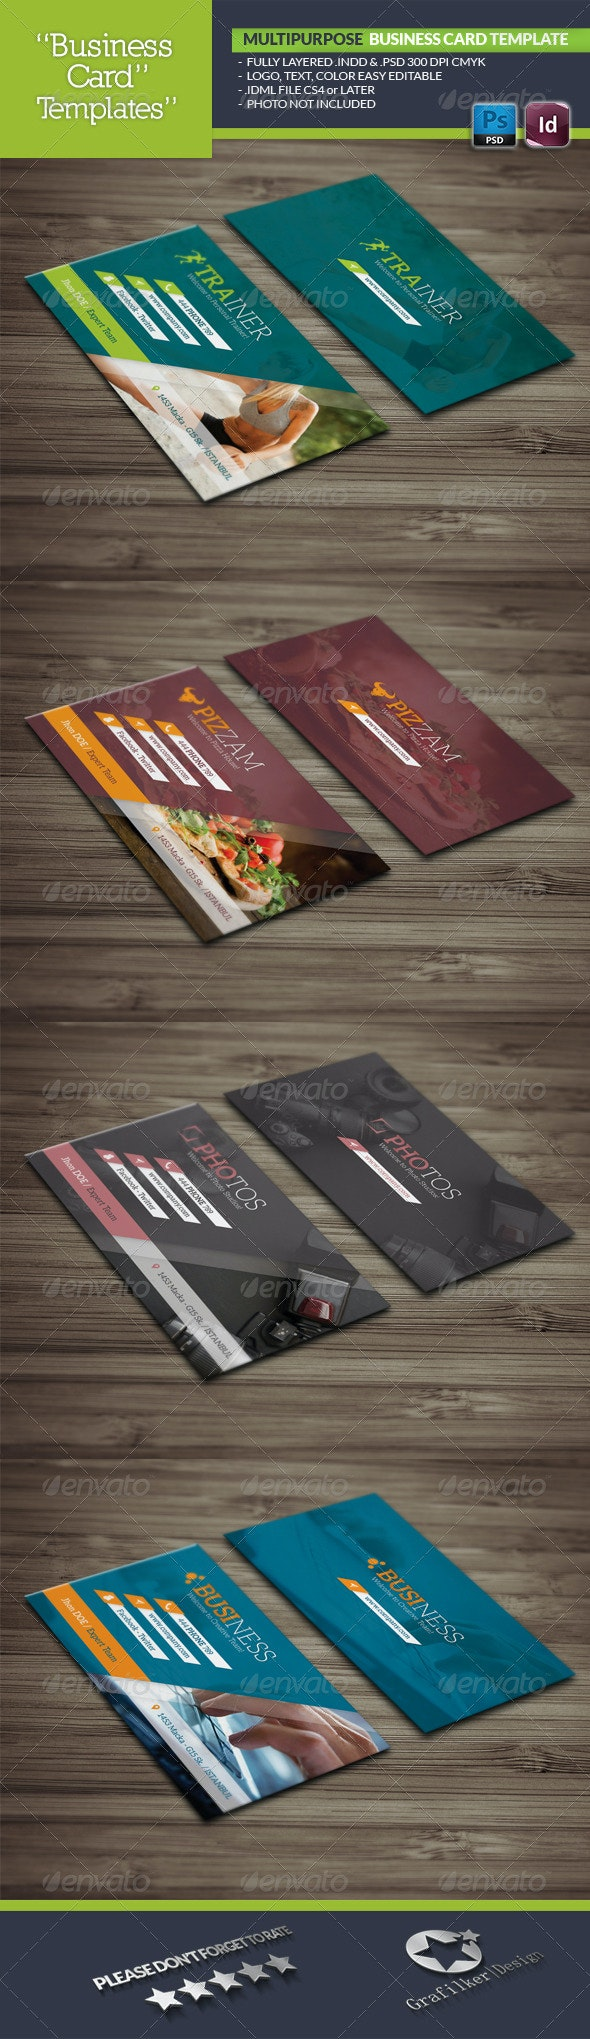 Multipurpose Business Card Template - Business Cards Print Templates